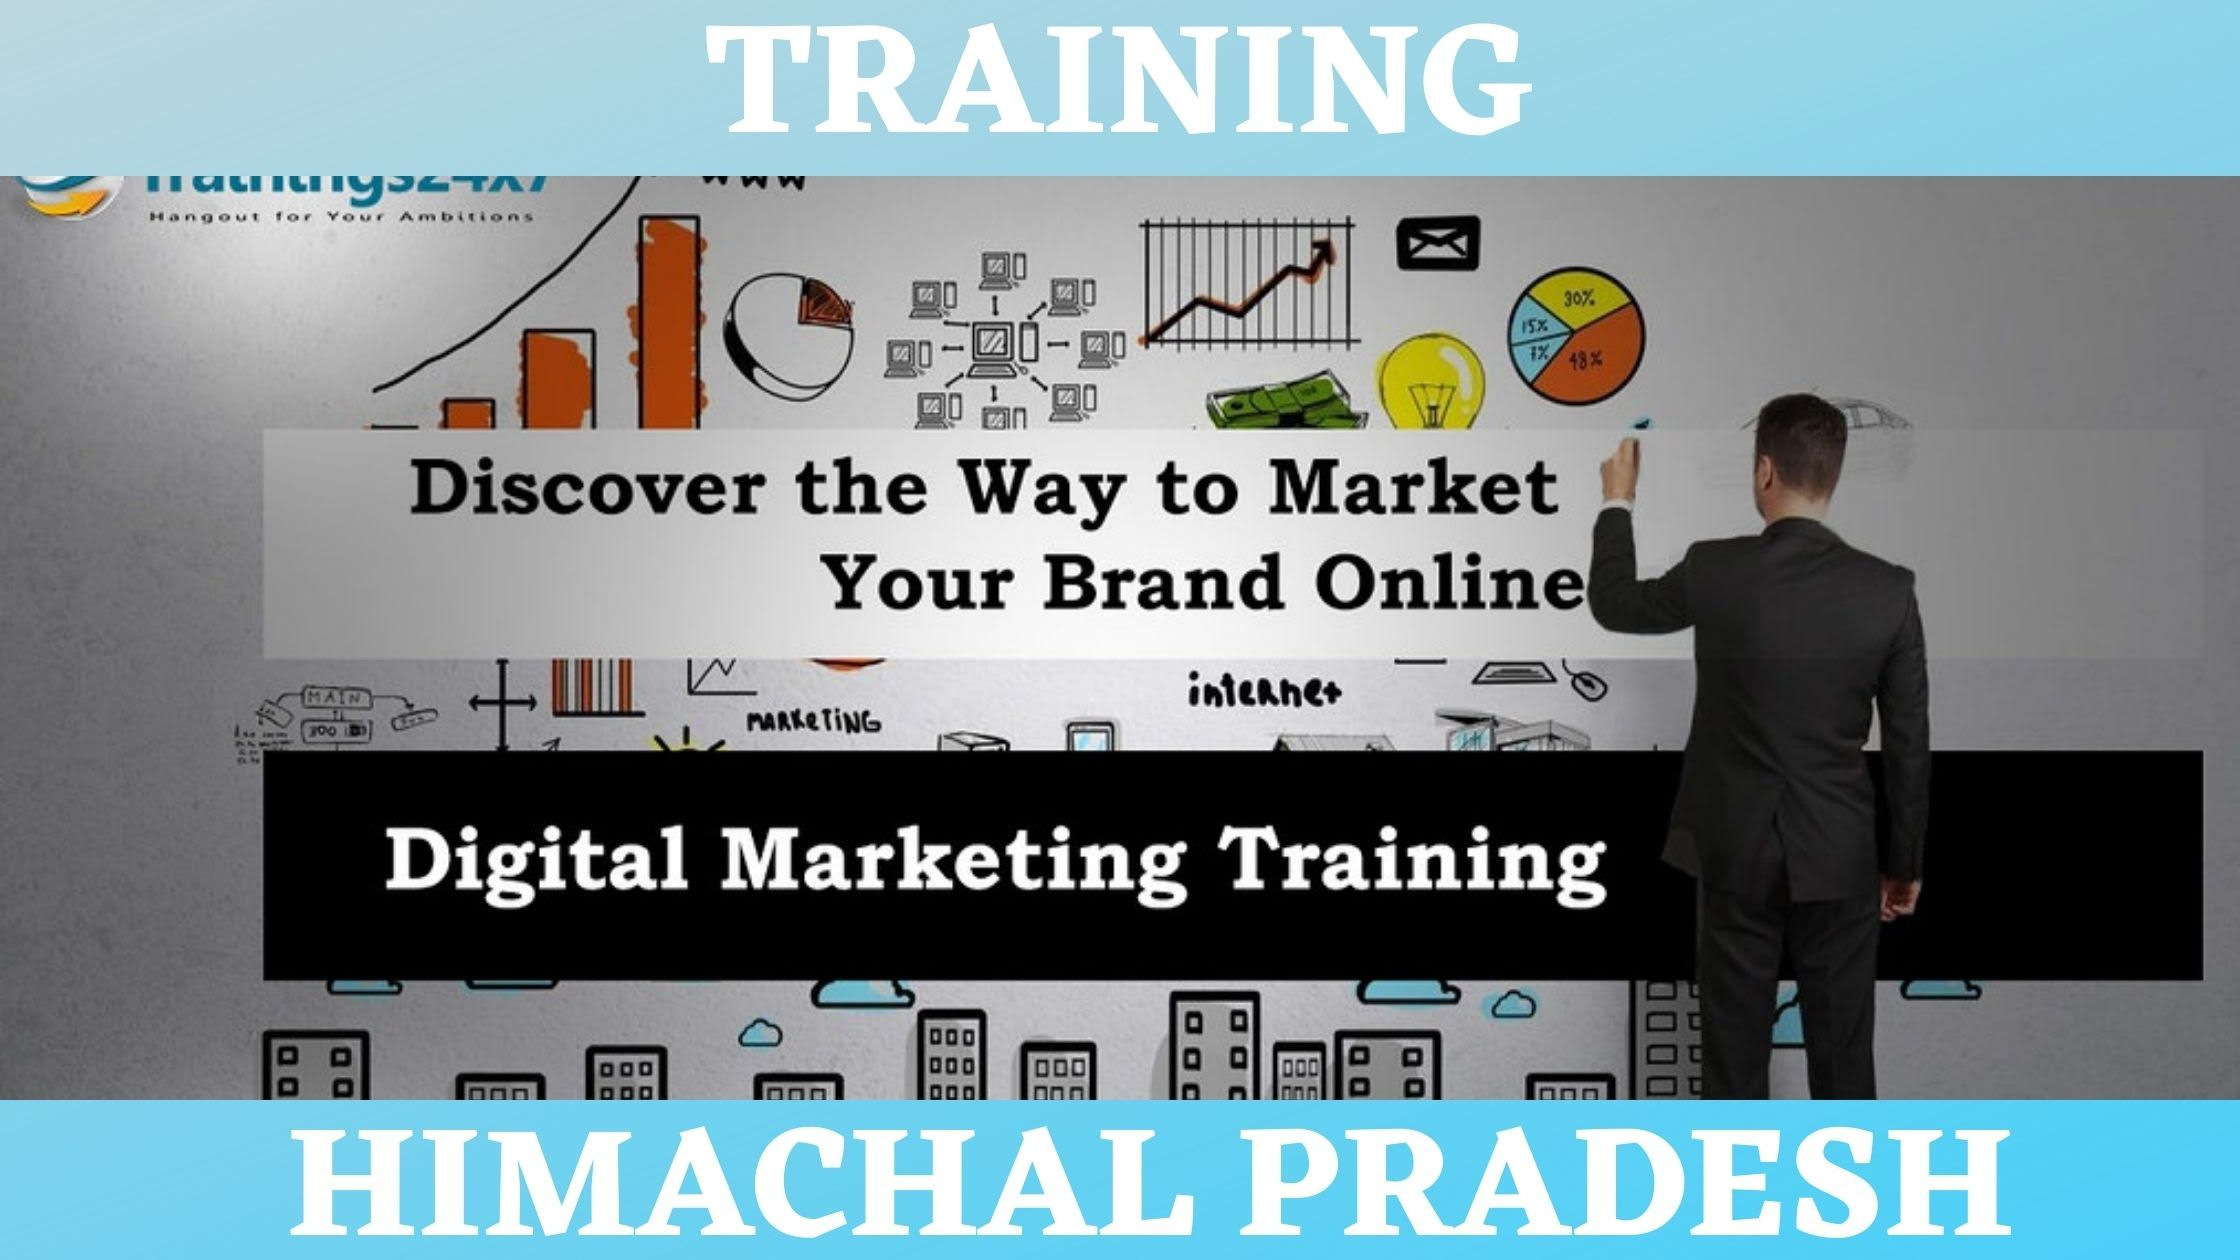 digital_marketing_training_in_himachal_pradesh -background.jpeg